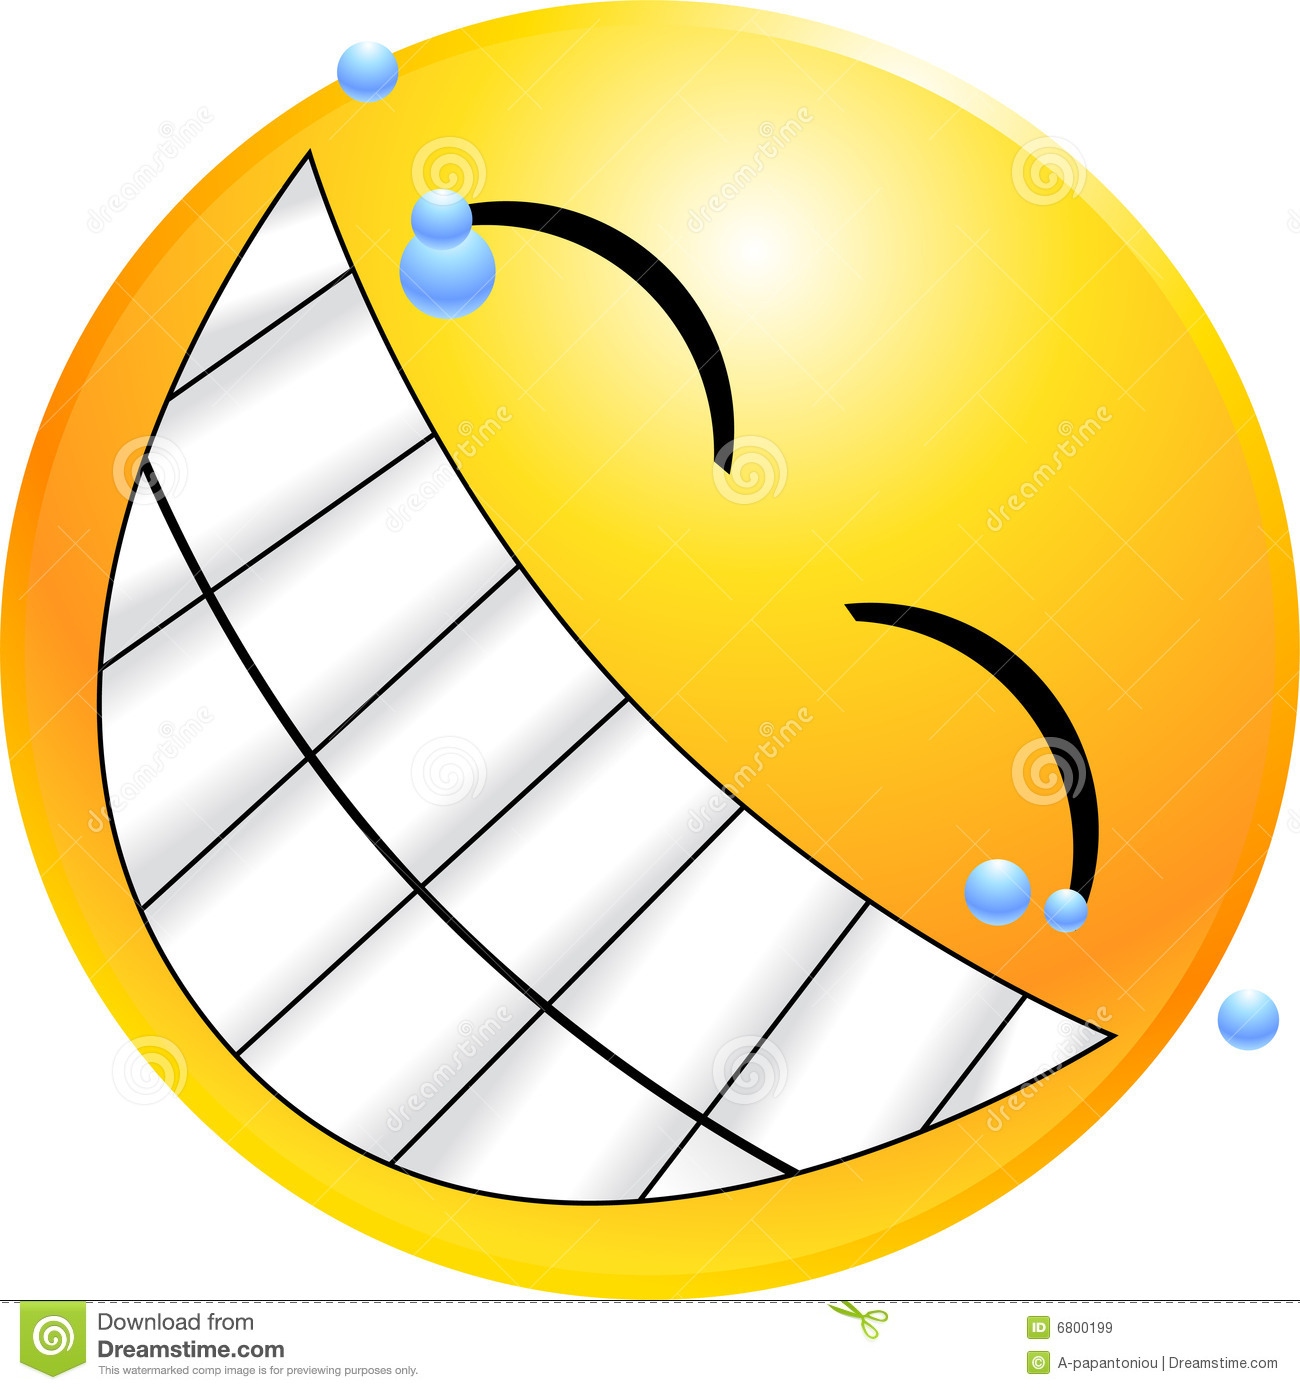 Emoticon Smiley Face Royalty Free Stock Images   Image  6800199